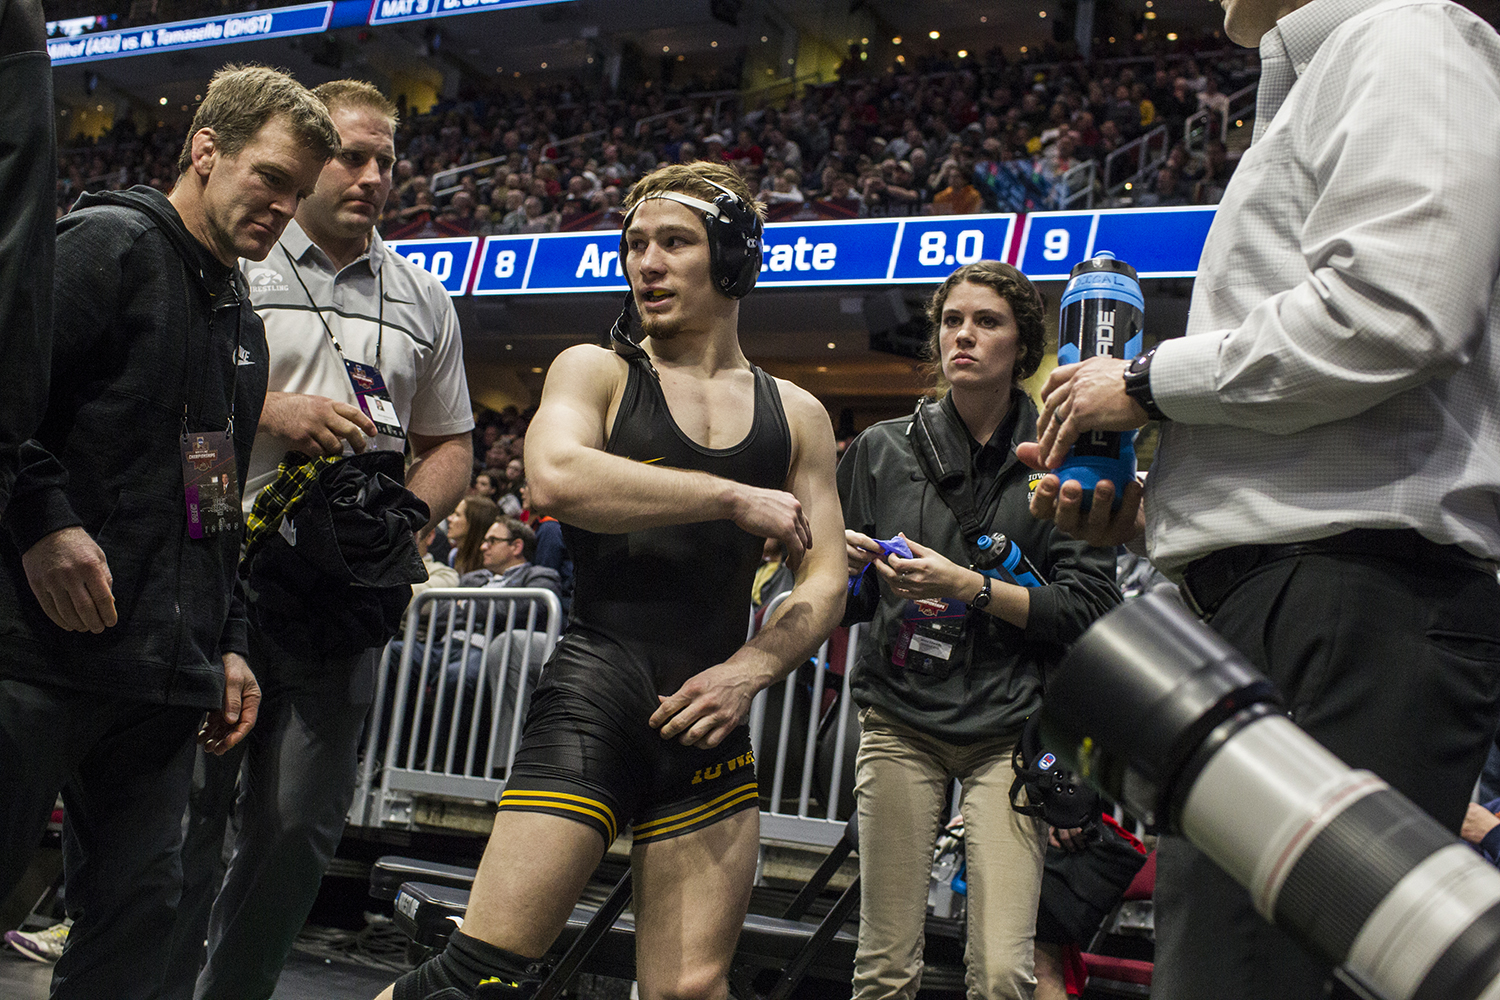 Iowa's 125-pound Spencer Lee walks off the mat after defeating Purdue's Luke Welch during Session 2 of the NCAAs Wrestling Championships at Quicken Loans Arena in Cleveland, OH on Thursday, March 15, 2018.